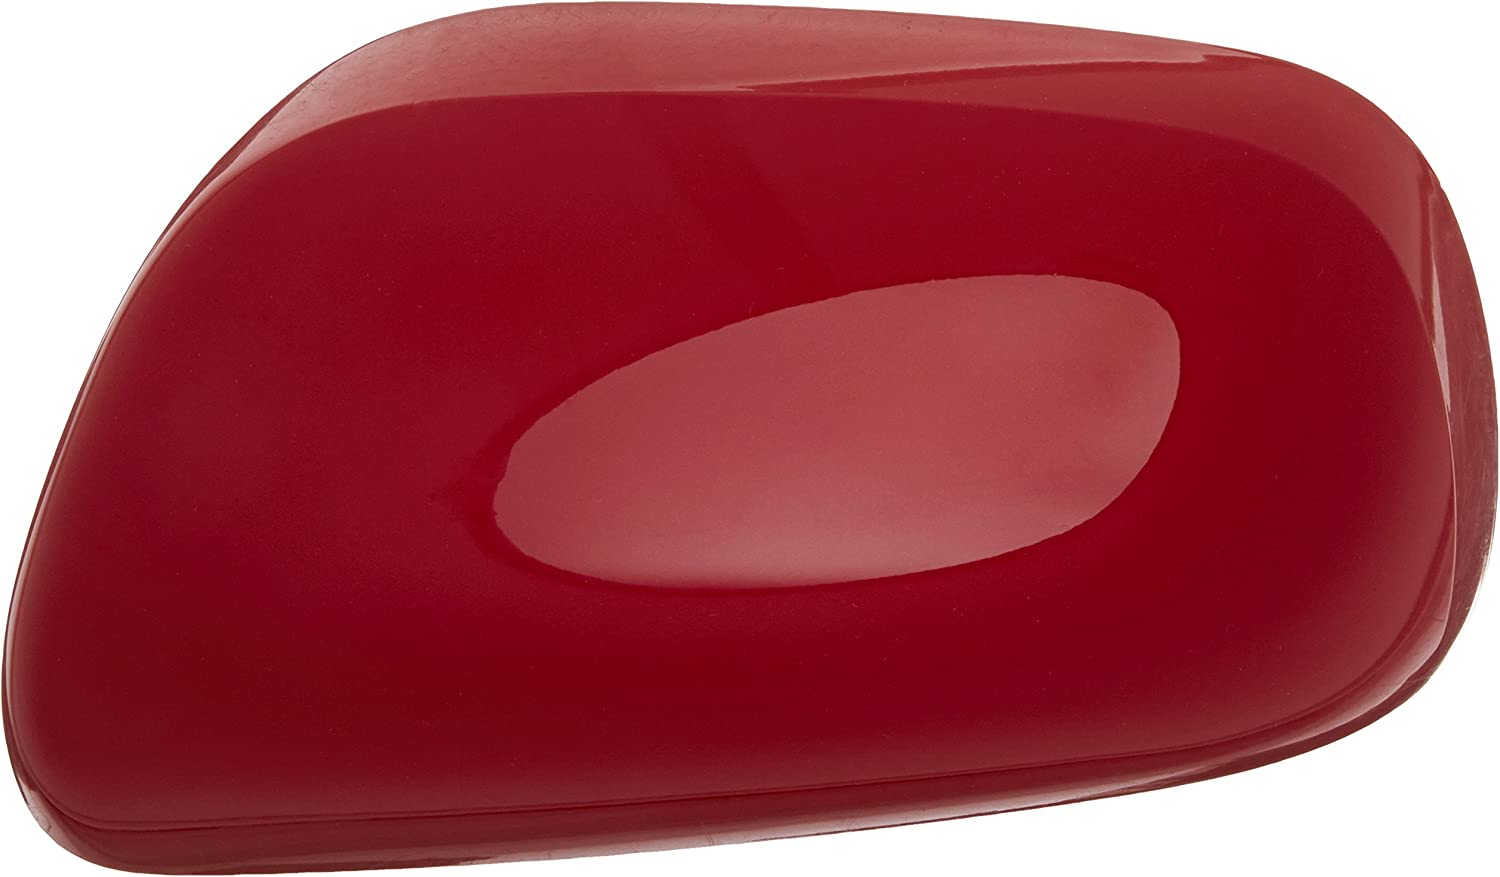 Genuine Toyota 87945-68010-D7 Outer Mirror Cover